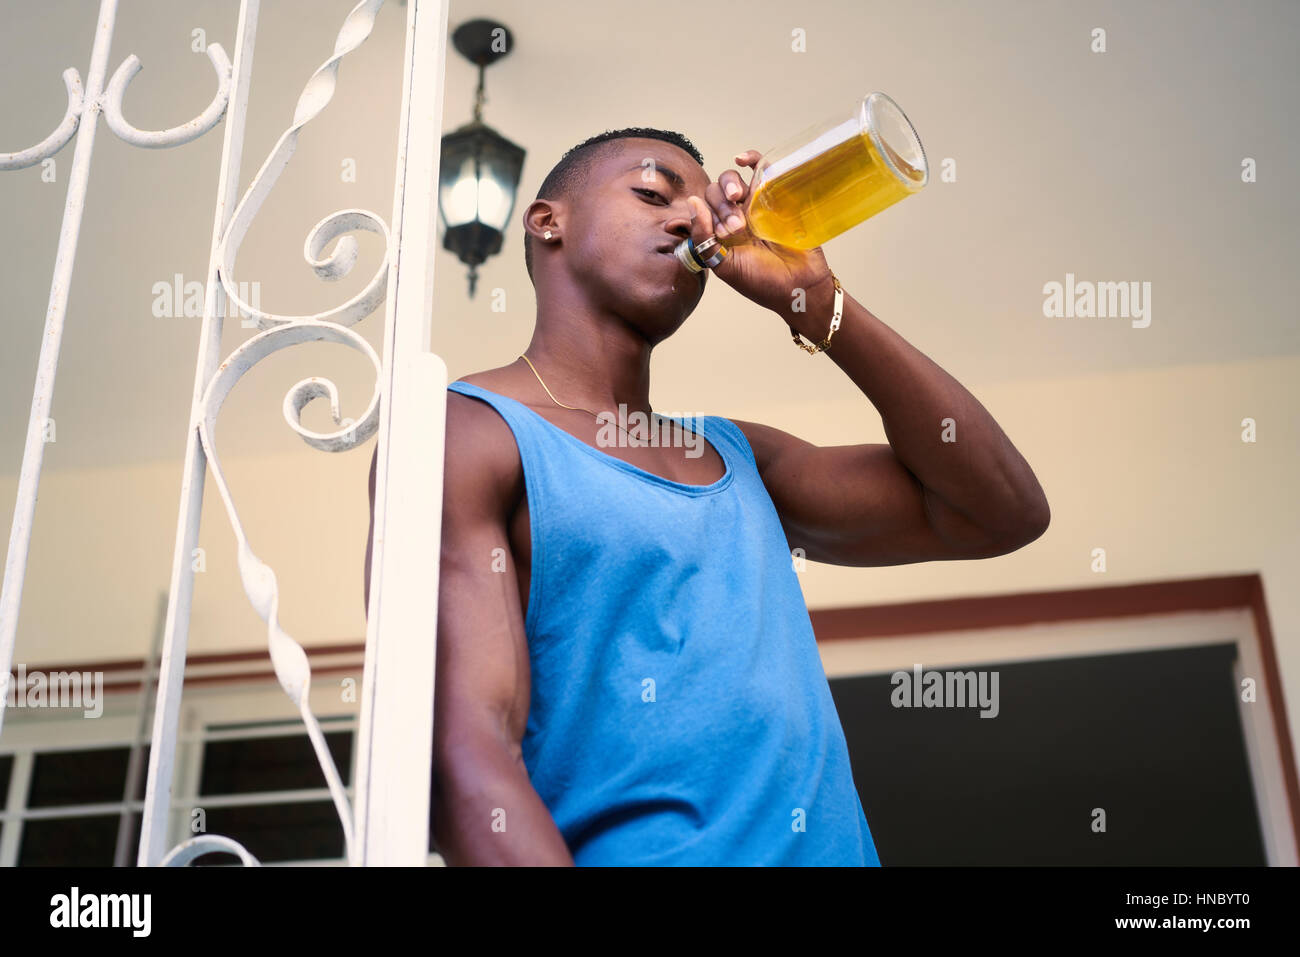 Social issues and substance abuse. Alcoholic young black man drinking alchool from liquor bottle at home, looking - Stock Image